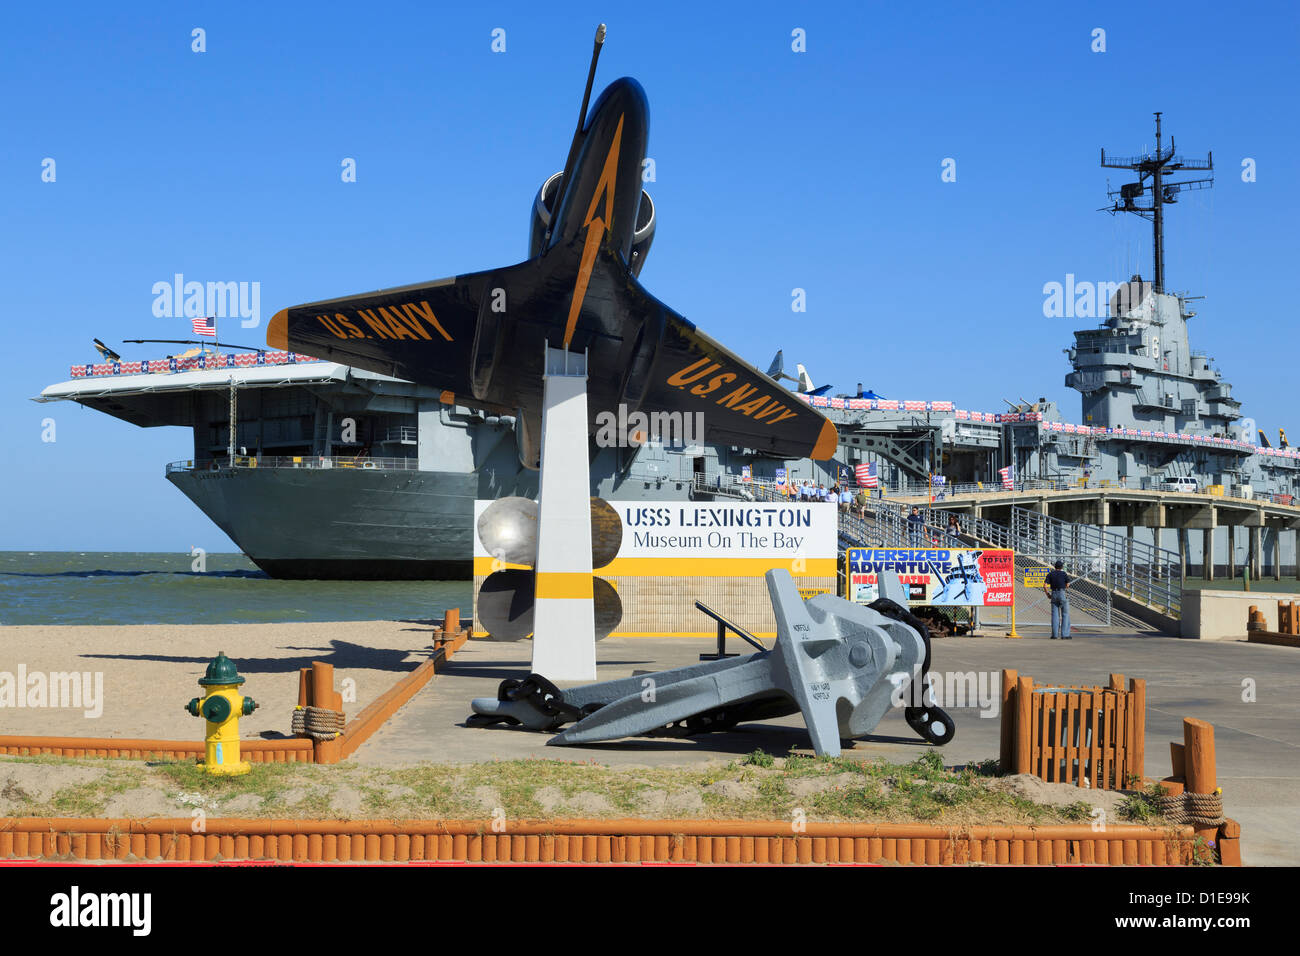 Museum Ships Stock Photos  Museum Ships Stock Images Alamy - Ship museums in us